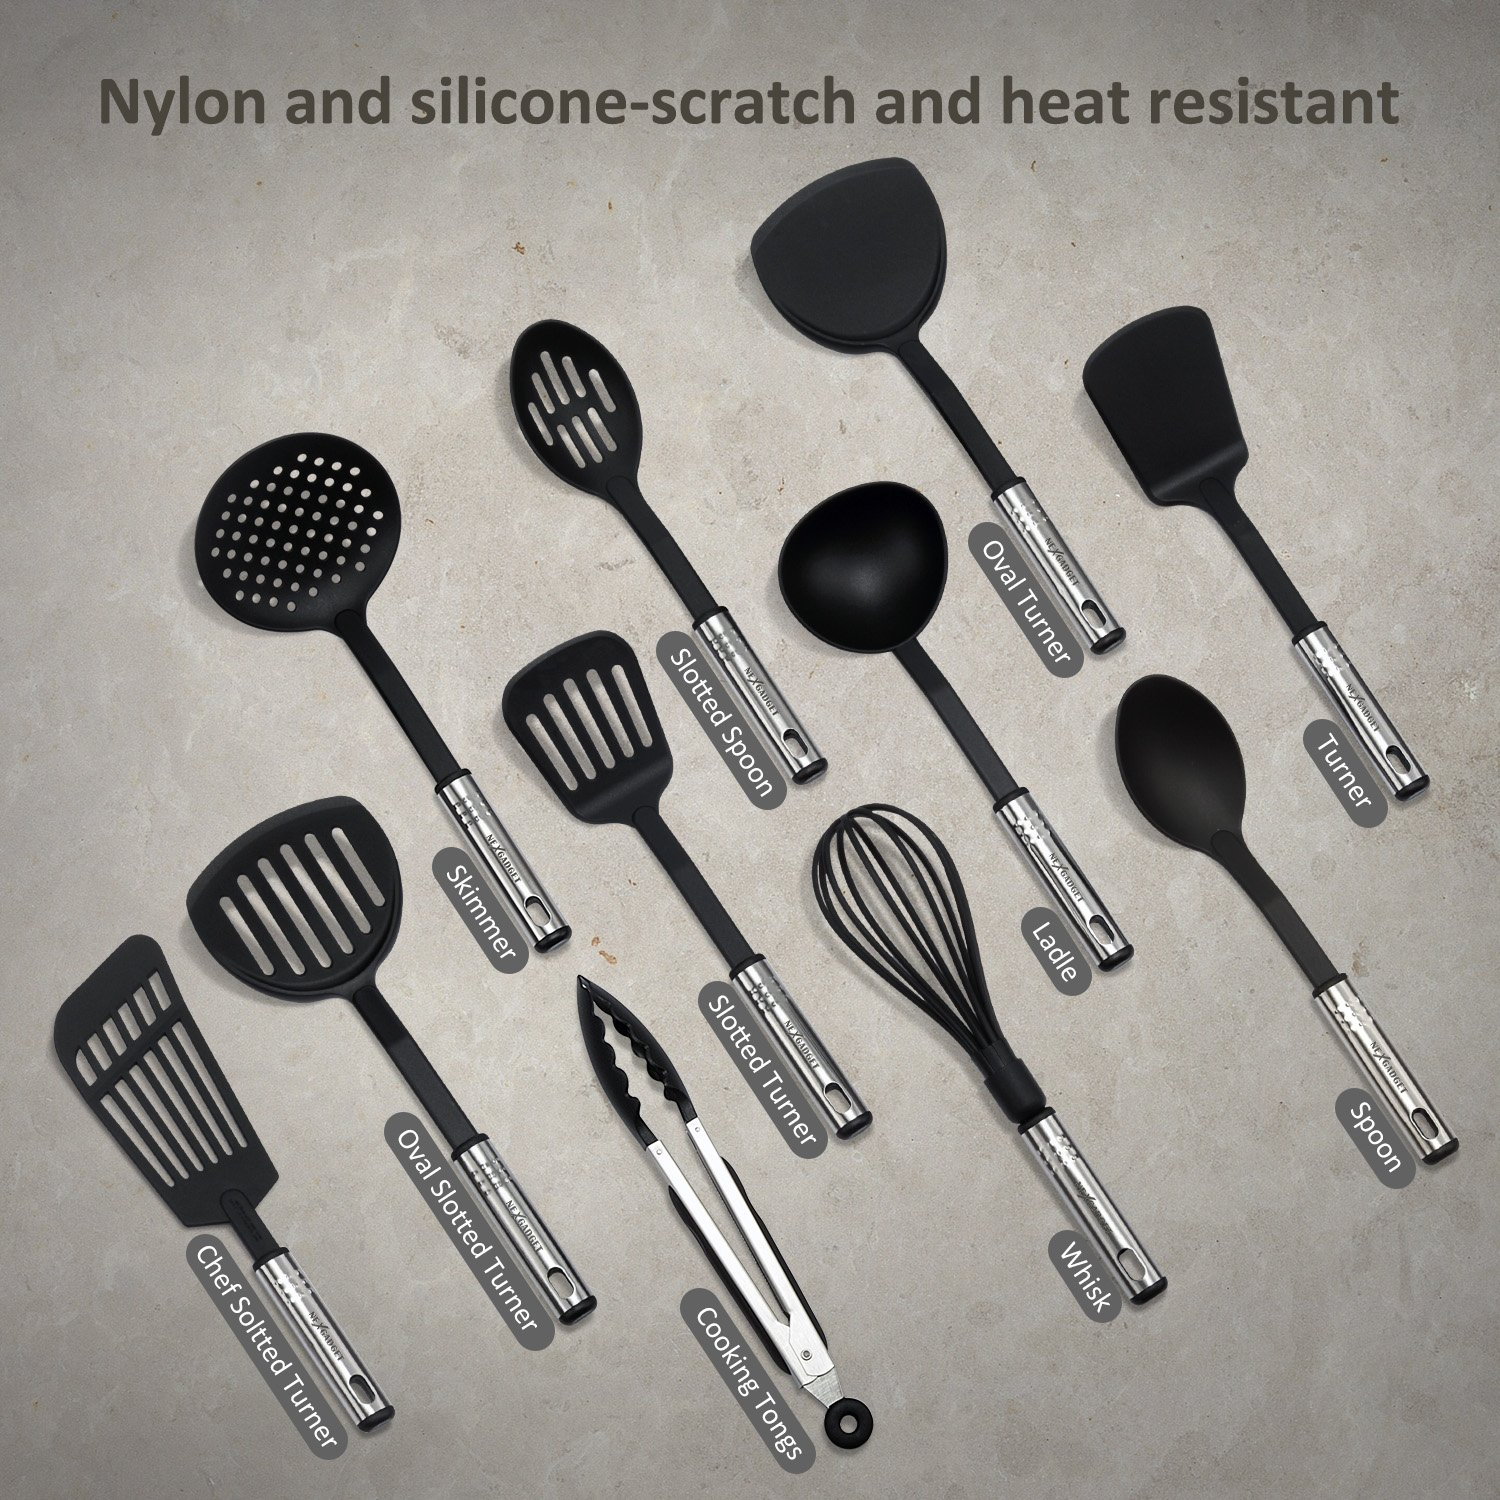 NexGadget Premium Kitchen Utensils 38 Pieces Kitchen Utensils Sets Stainless Steel And Nylon Cooking Tools Spoons, Turners, Tongs, Spatulas, Pizza Cutter, Whisk And More by NEXGADGET (Image #2)